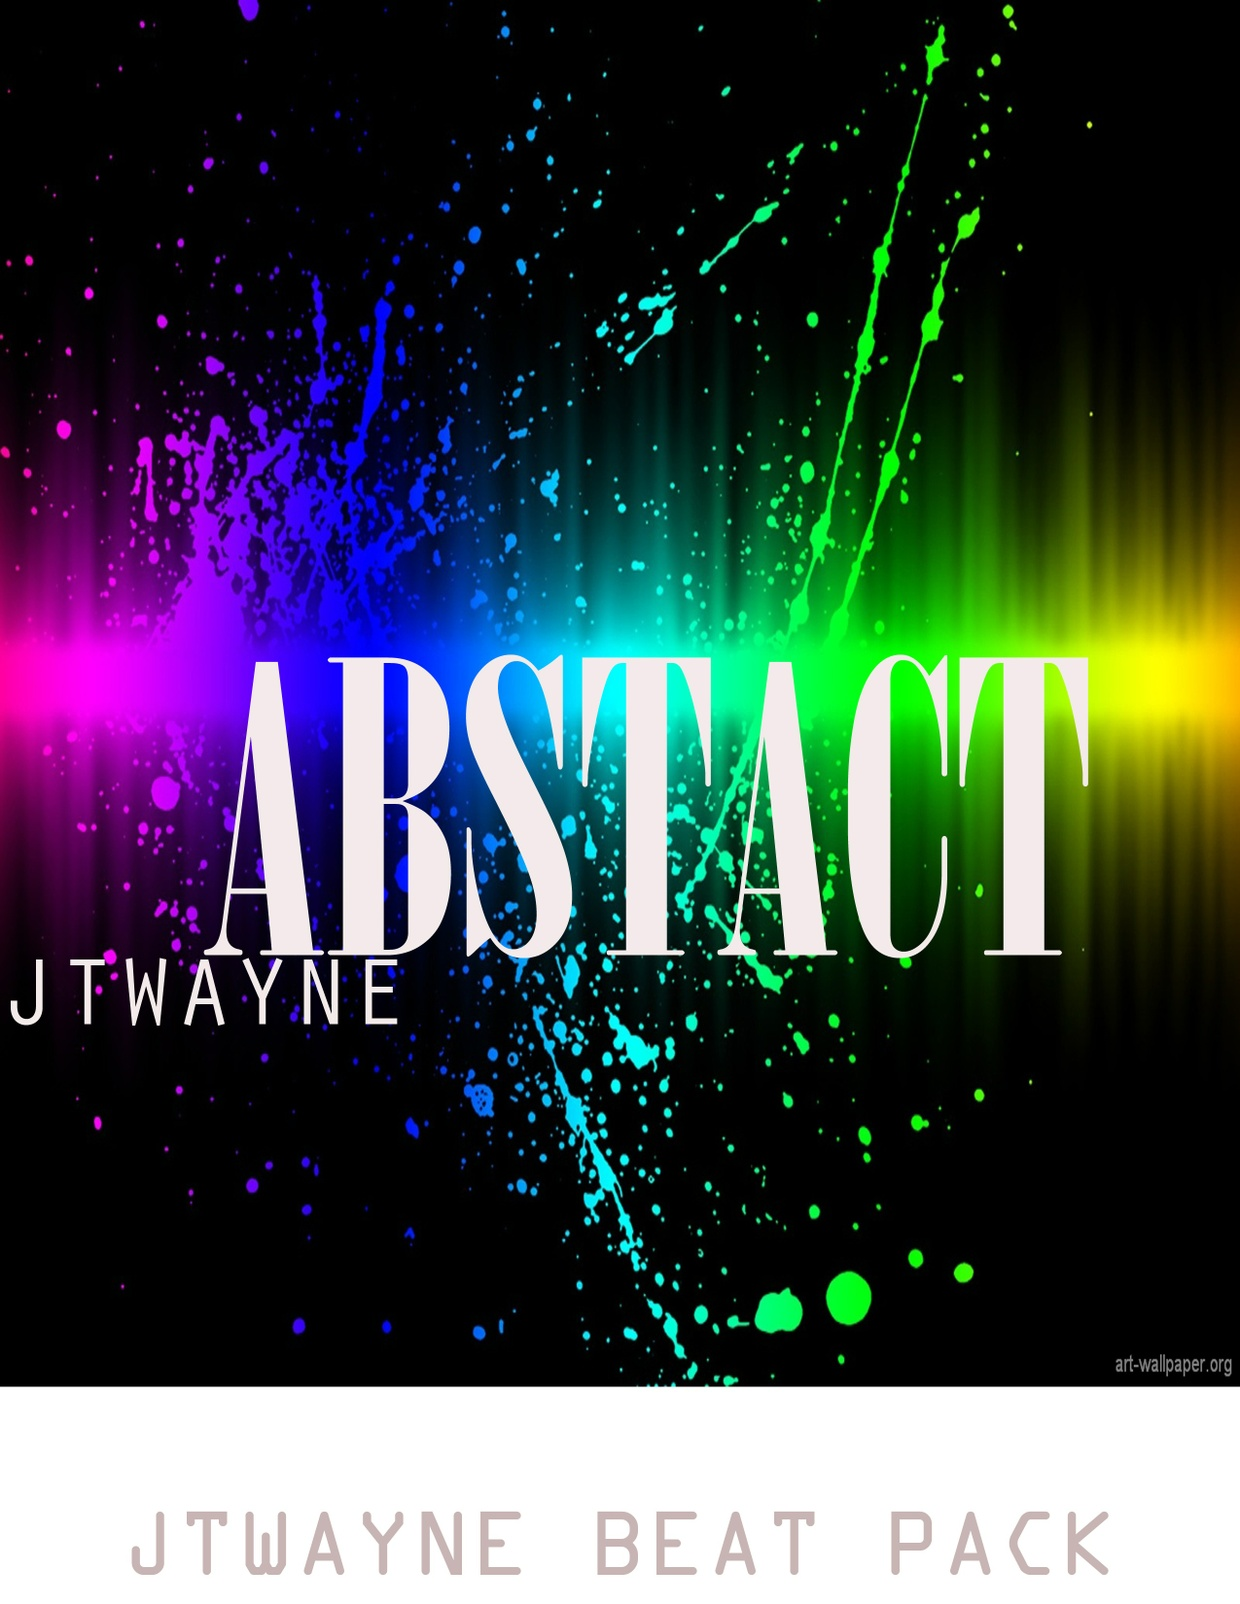 ABSTRACT BY JTWAYNE